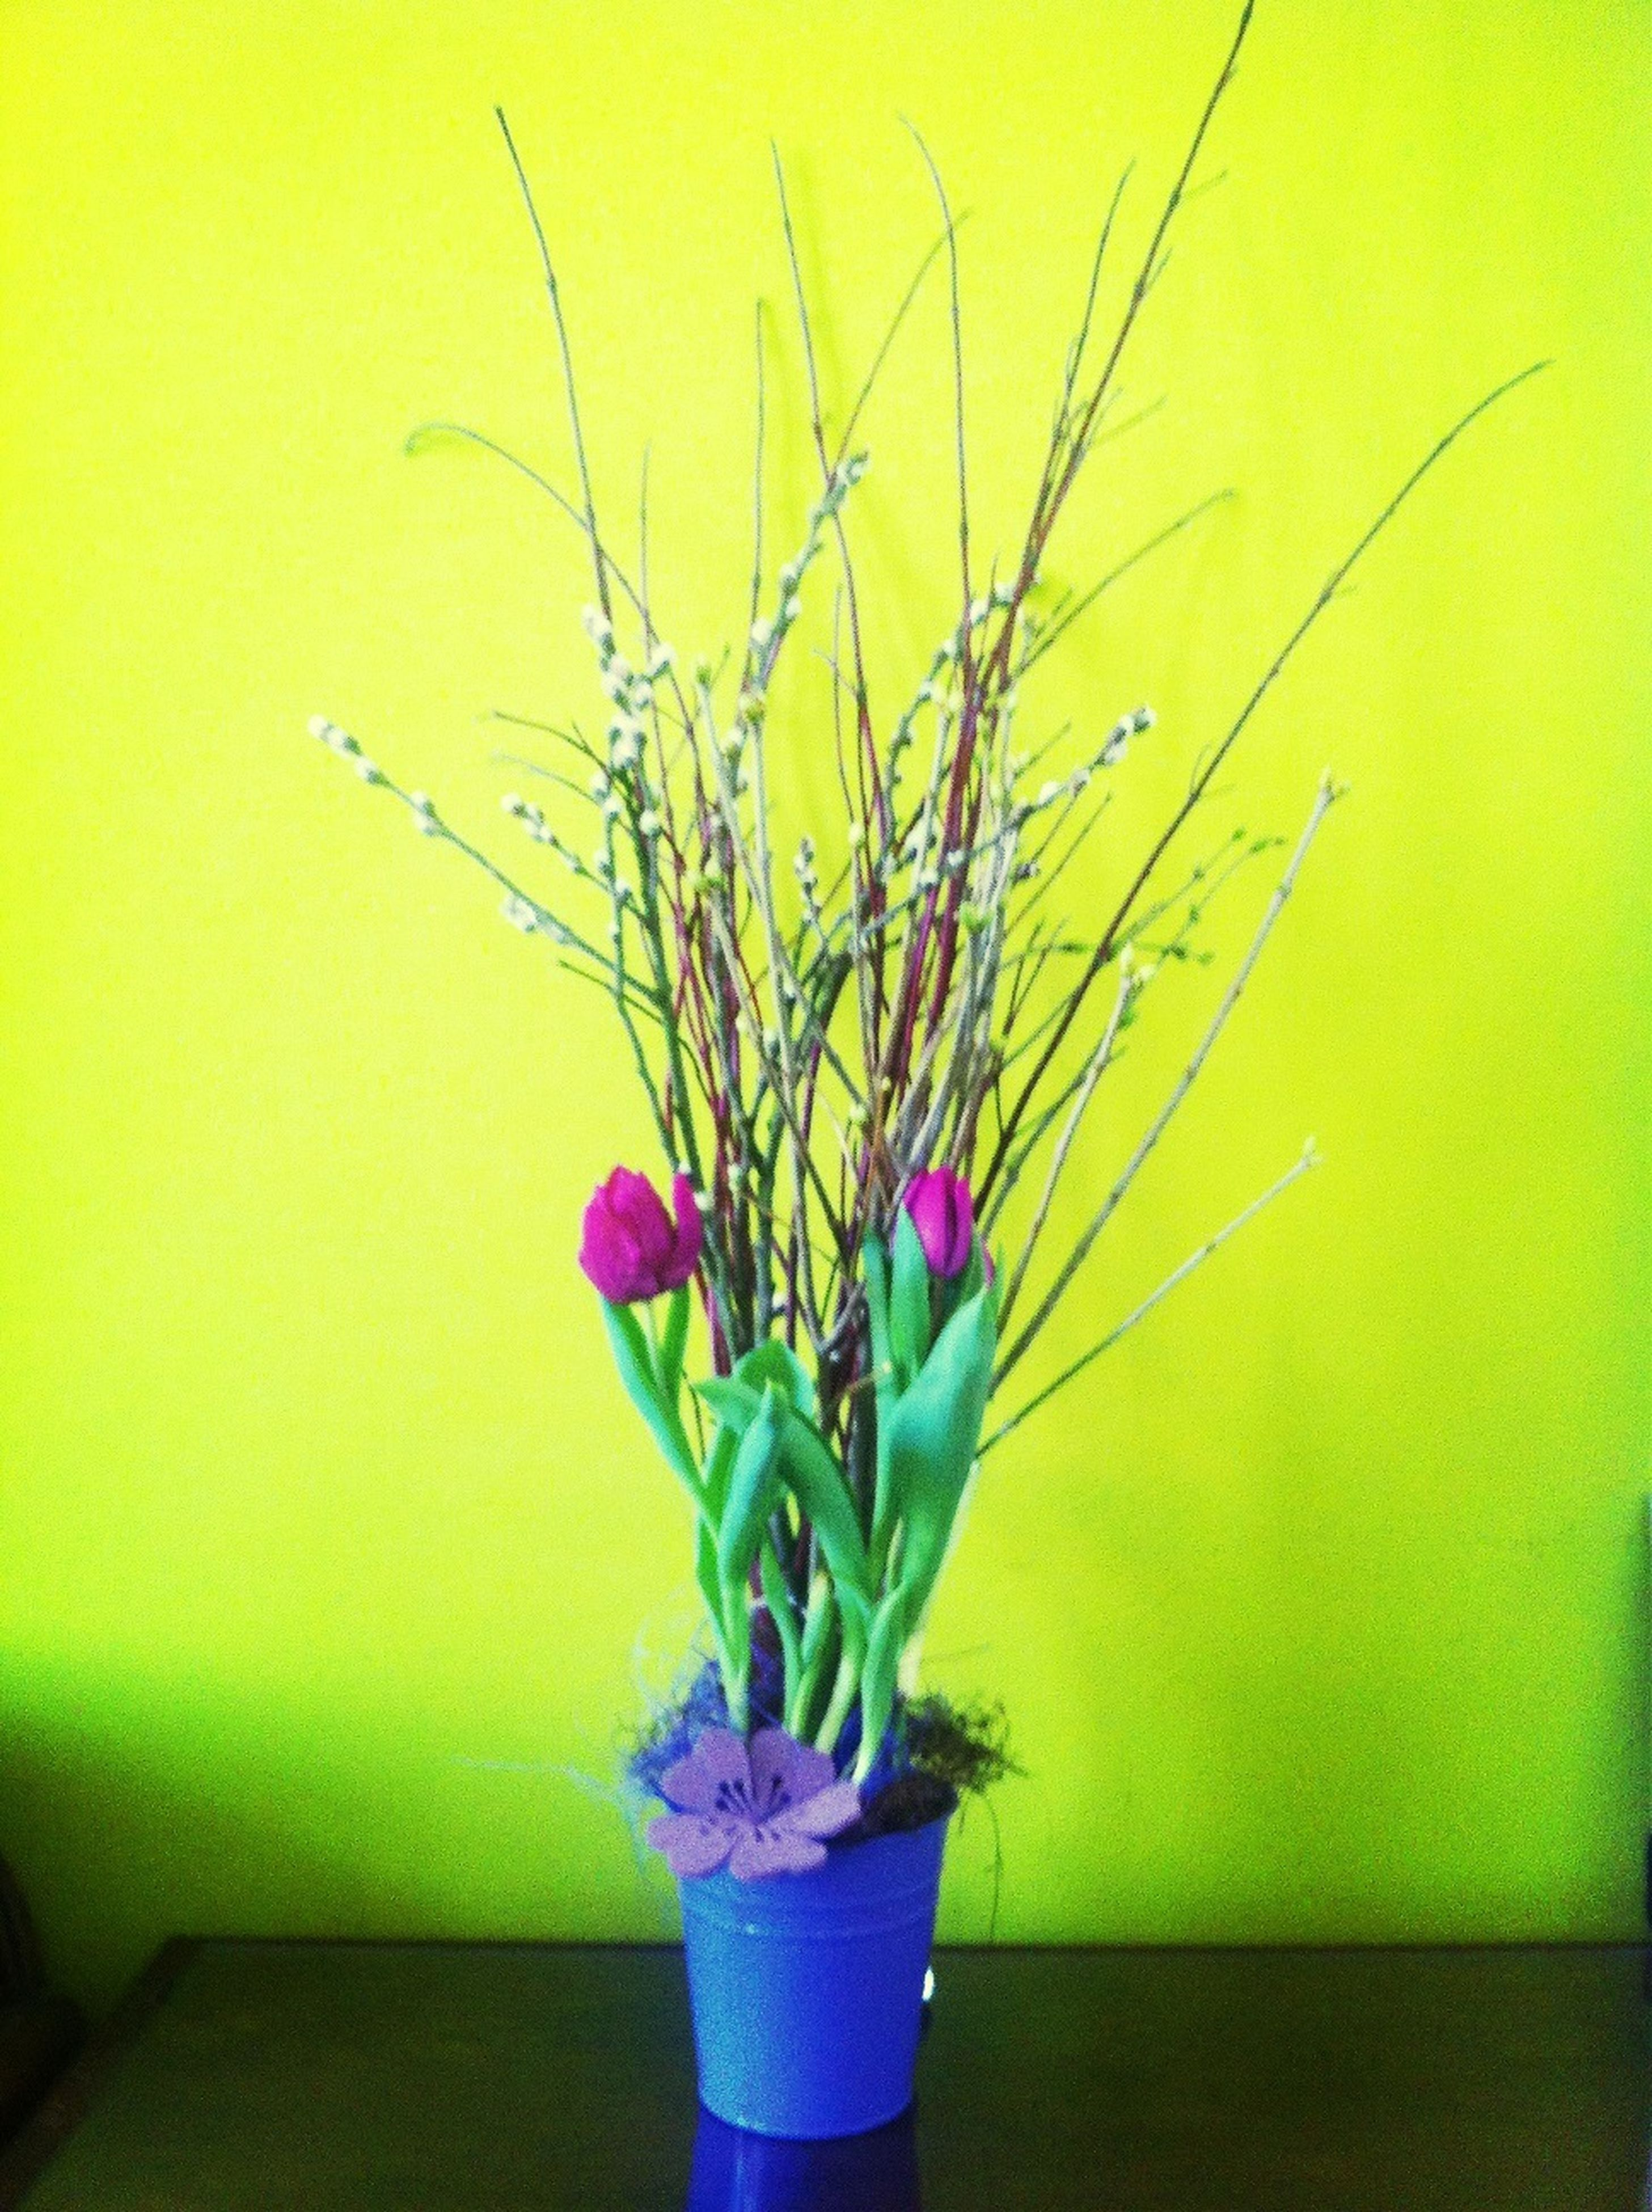 indoors, flower, wall - building feature, vase, plant, stem, potted plant, close-up, fragility, wall, home interior, still life, freshness, decoration, growth, no people, purple, flower pot, hanging, yellow